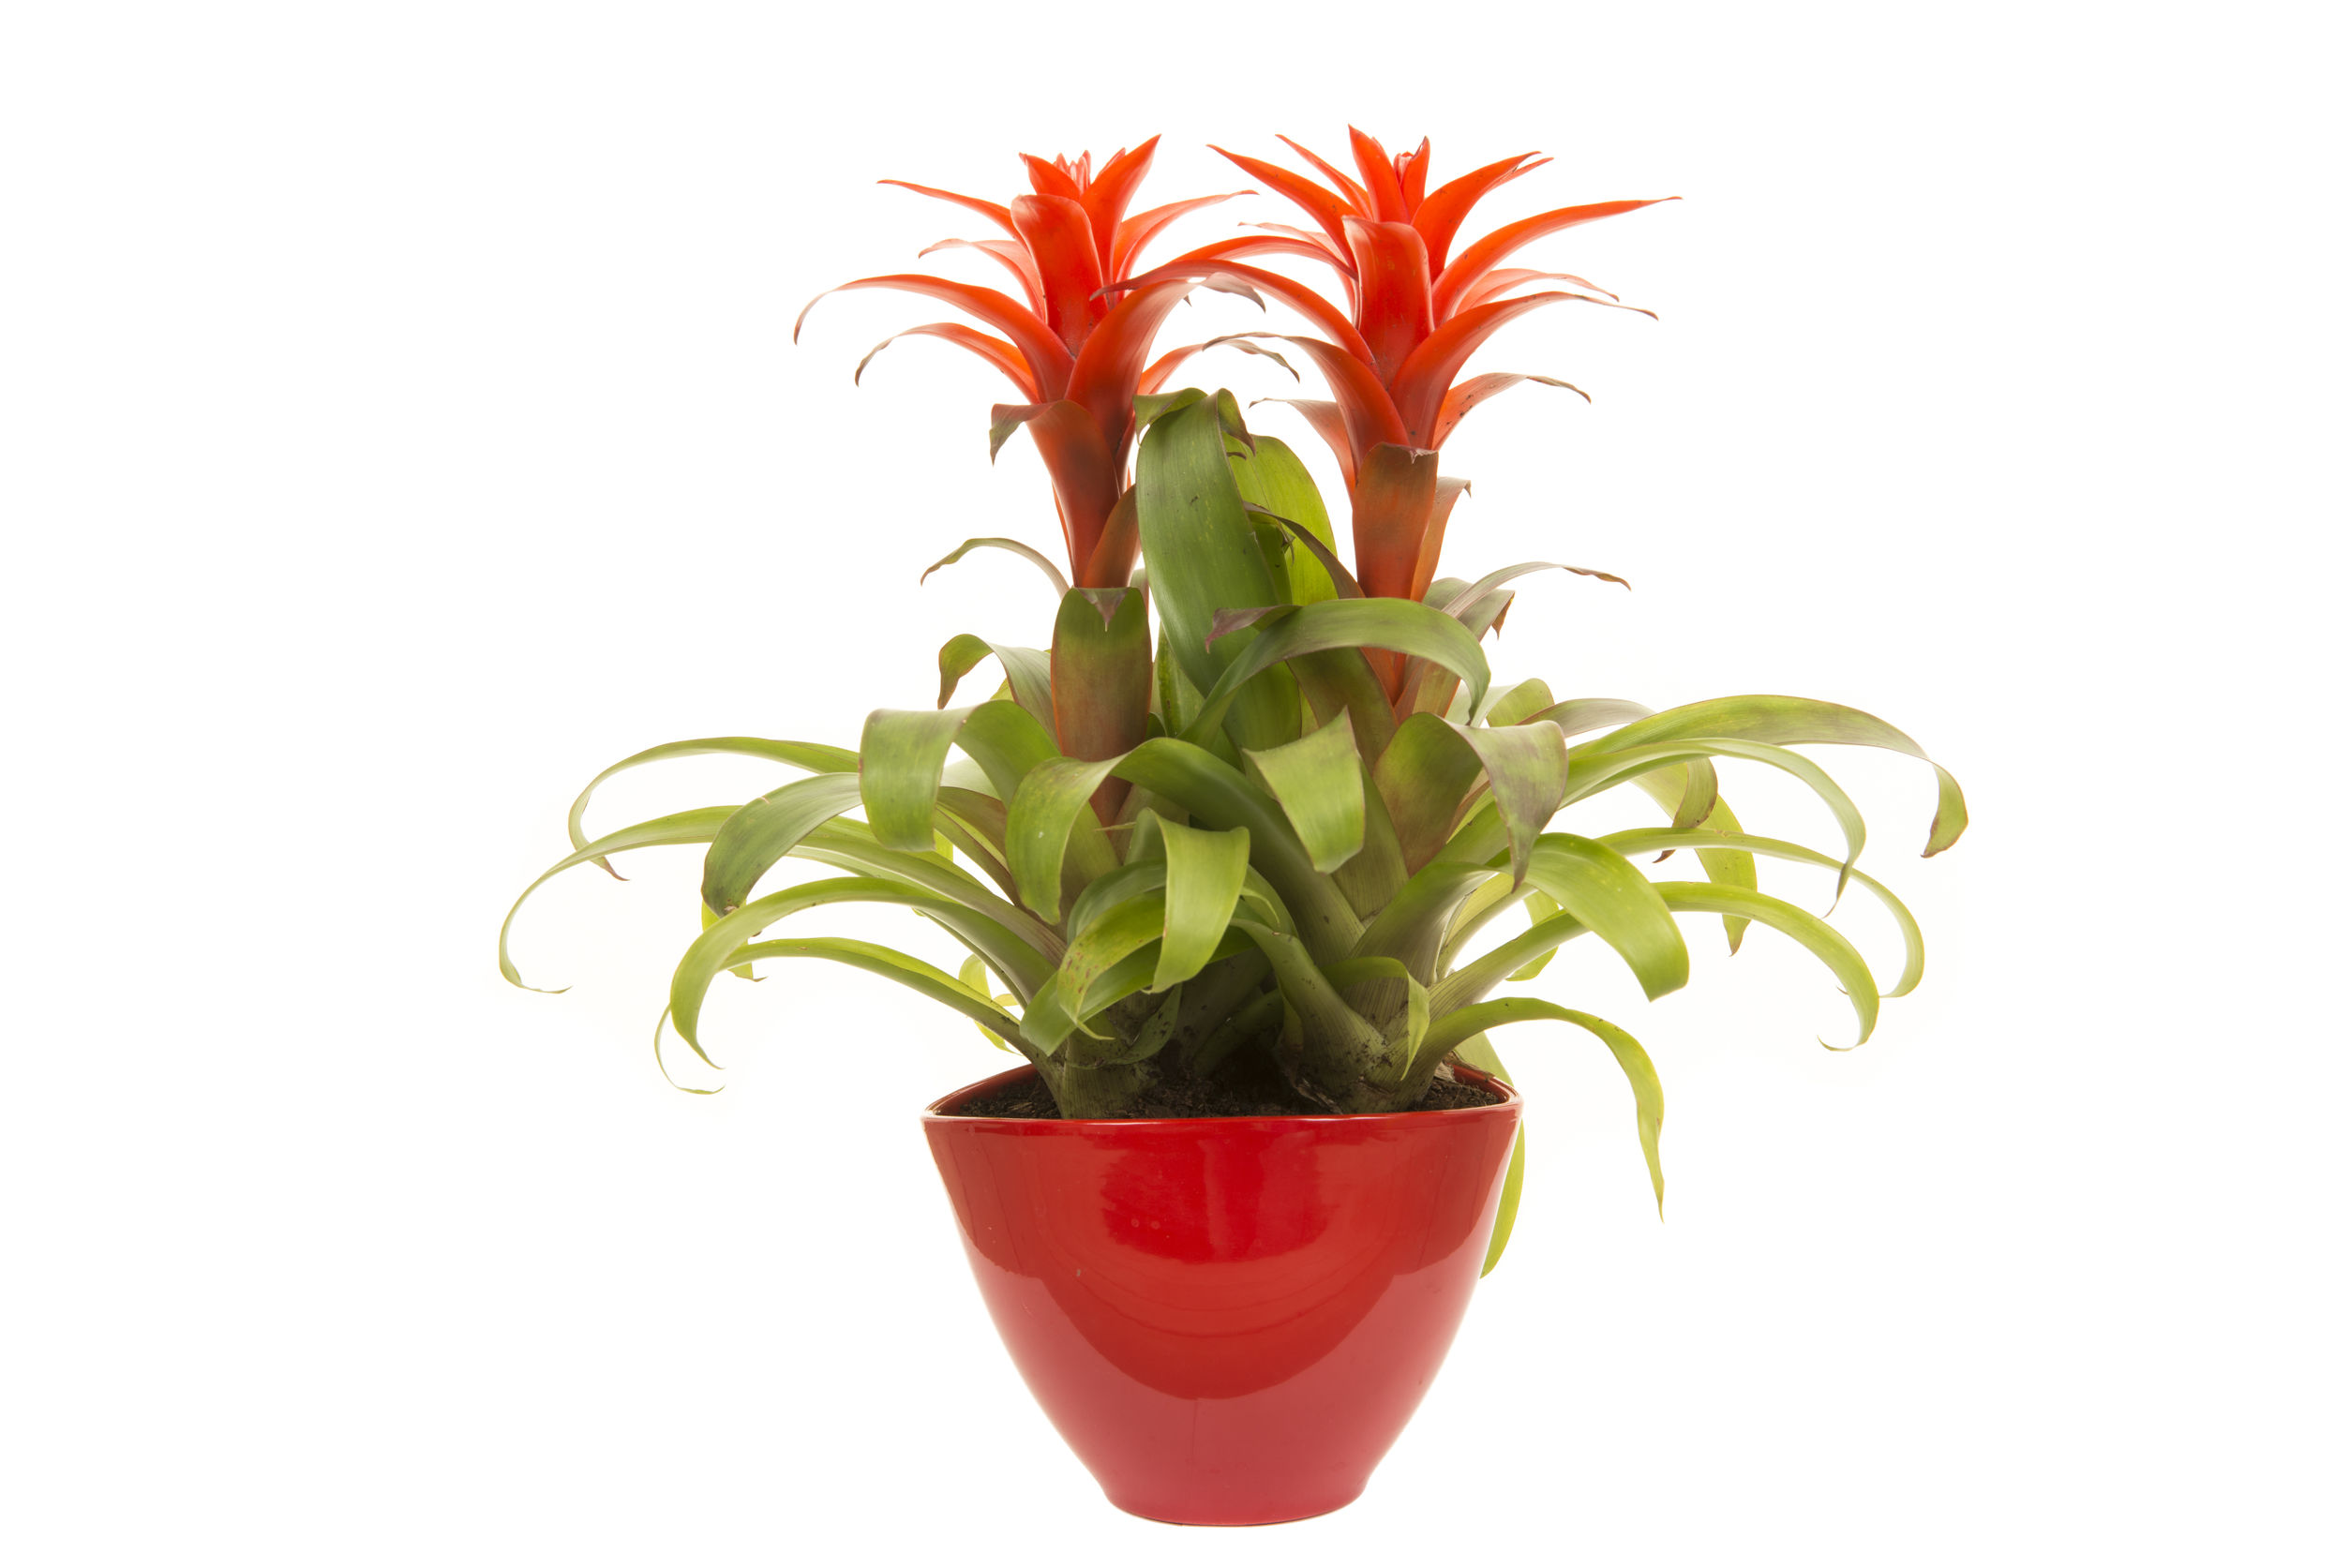 Bromeliad is a common household plant that is non-toxic to cats